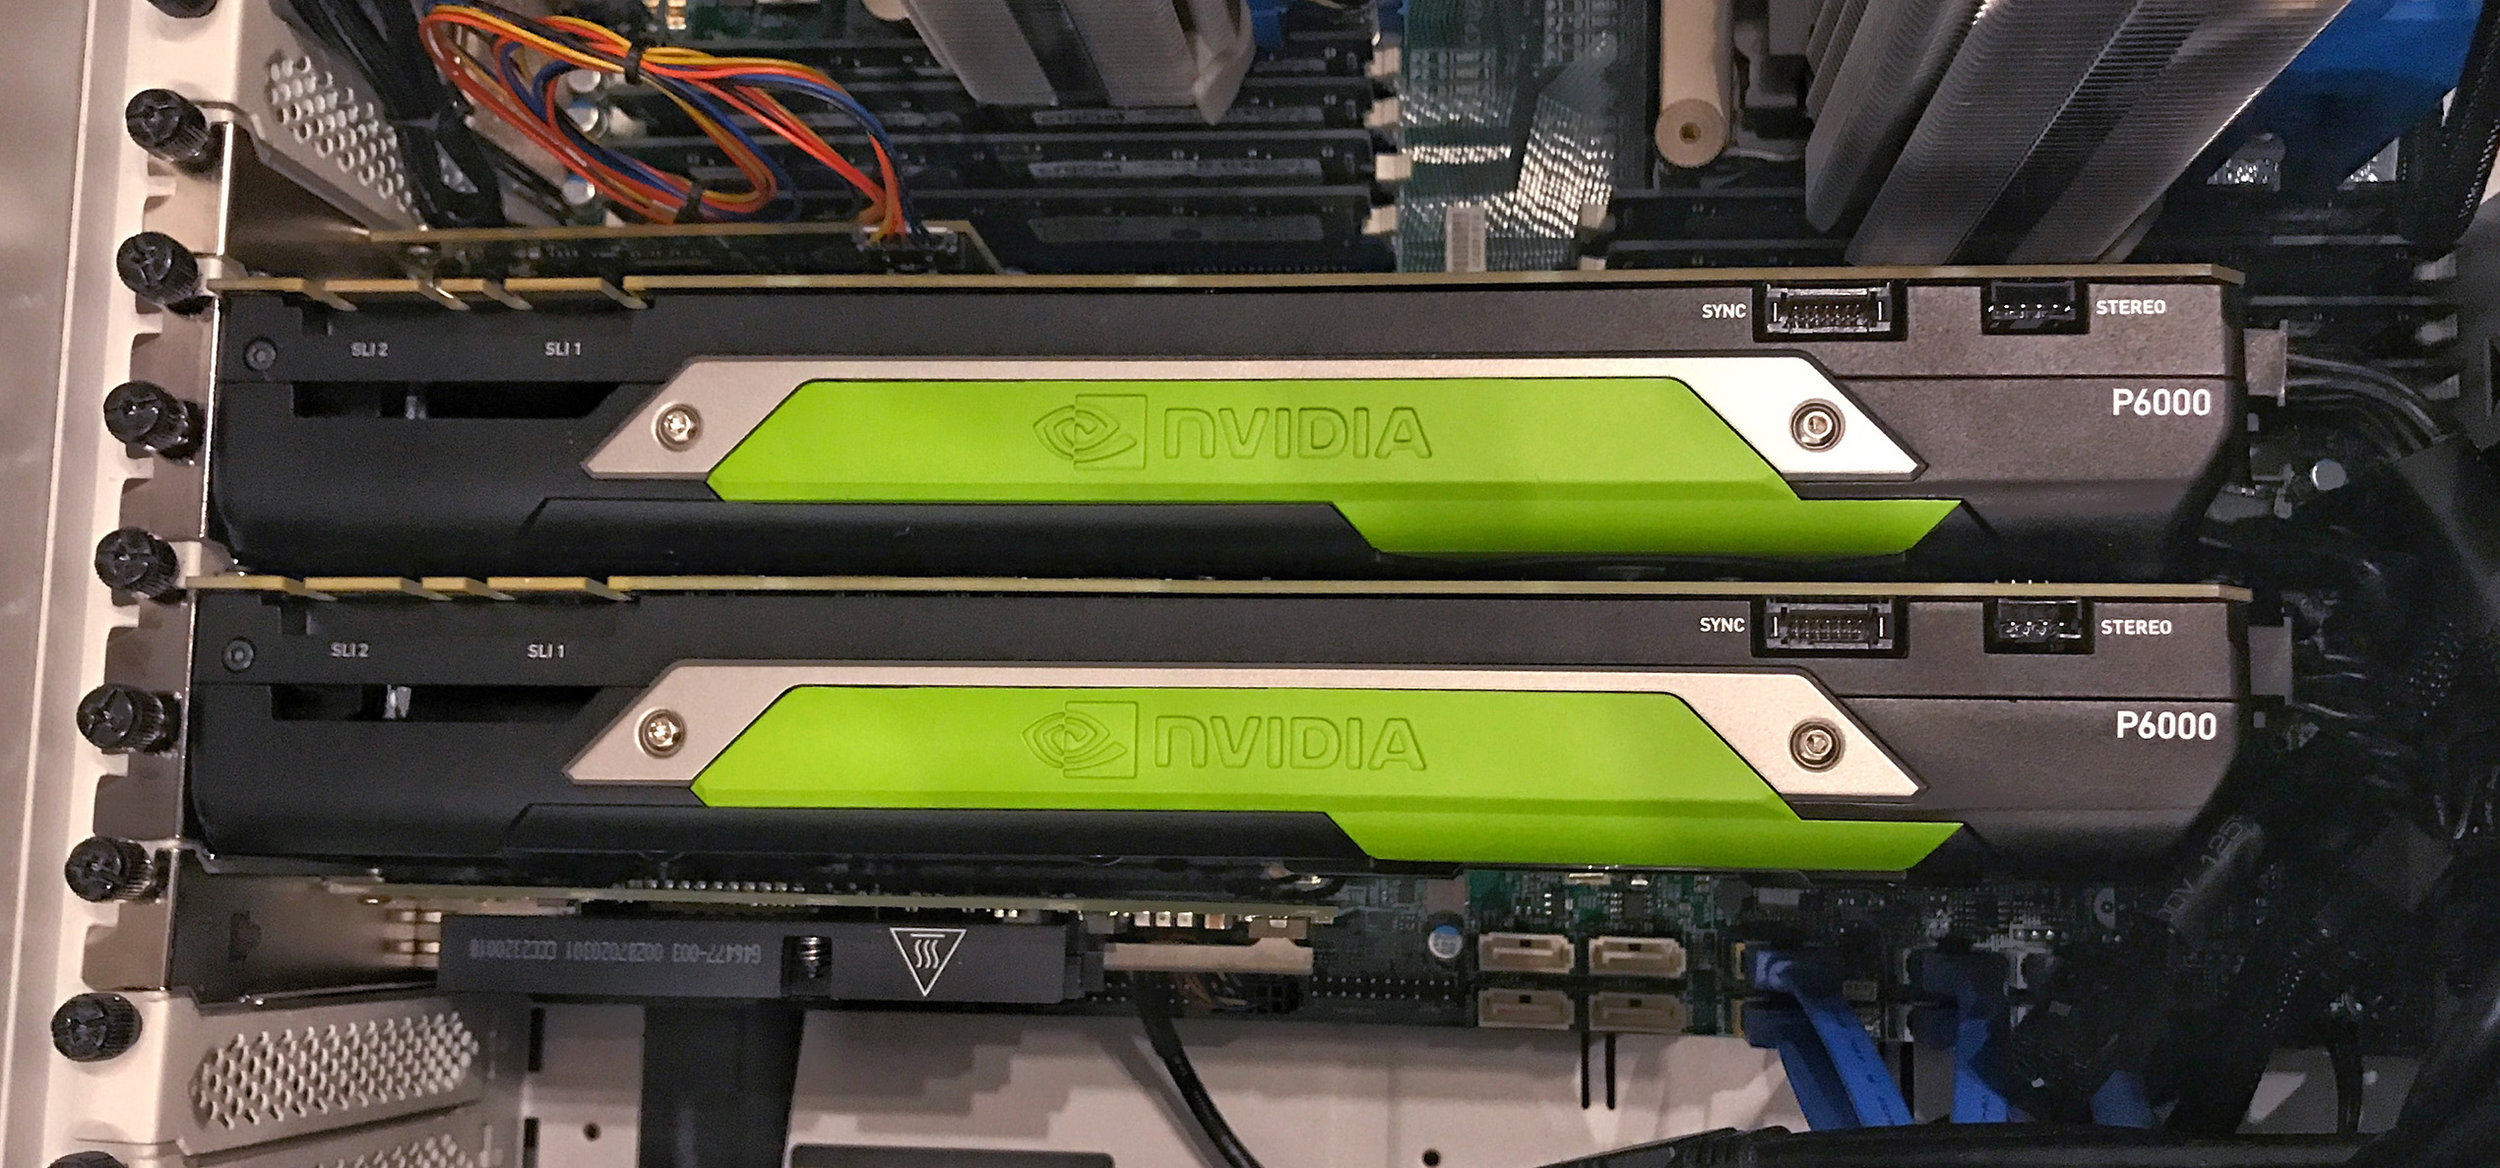 Nvidia Quadro P6000s in our Windows-based Render Rig